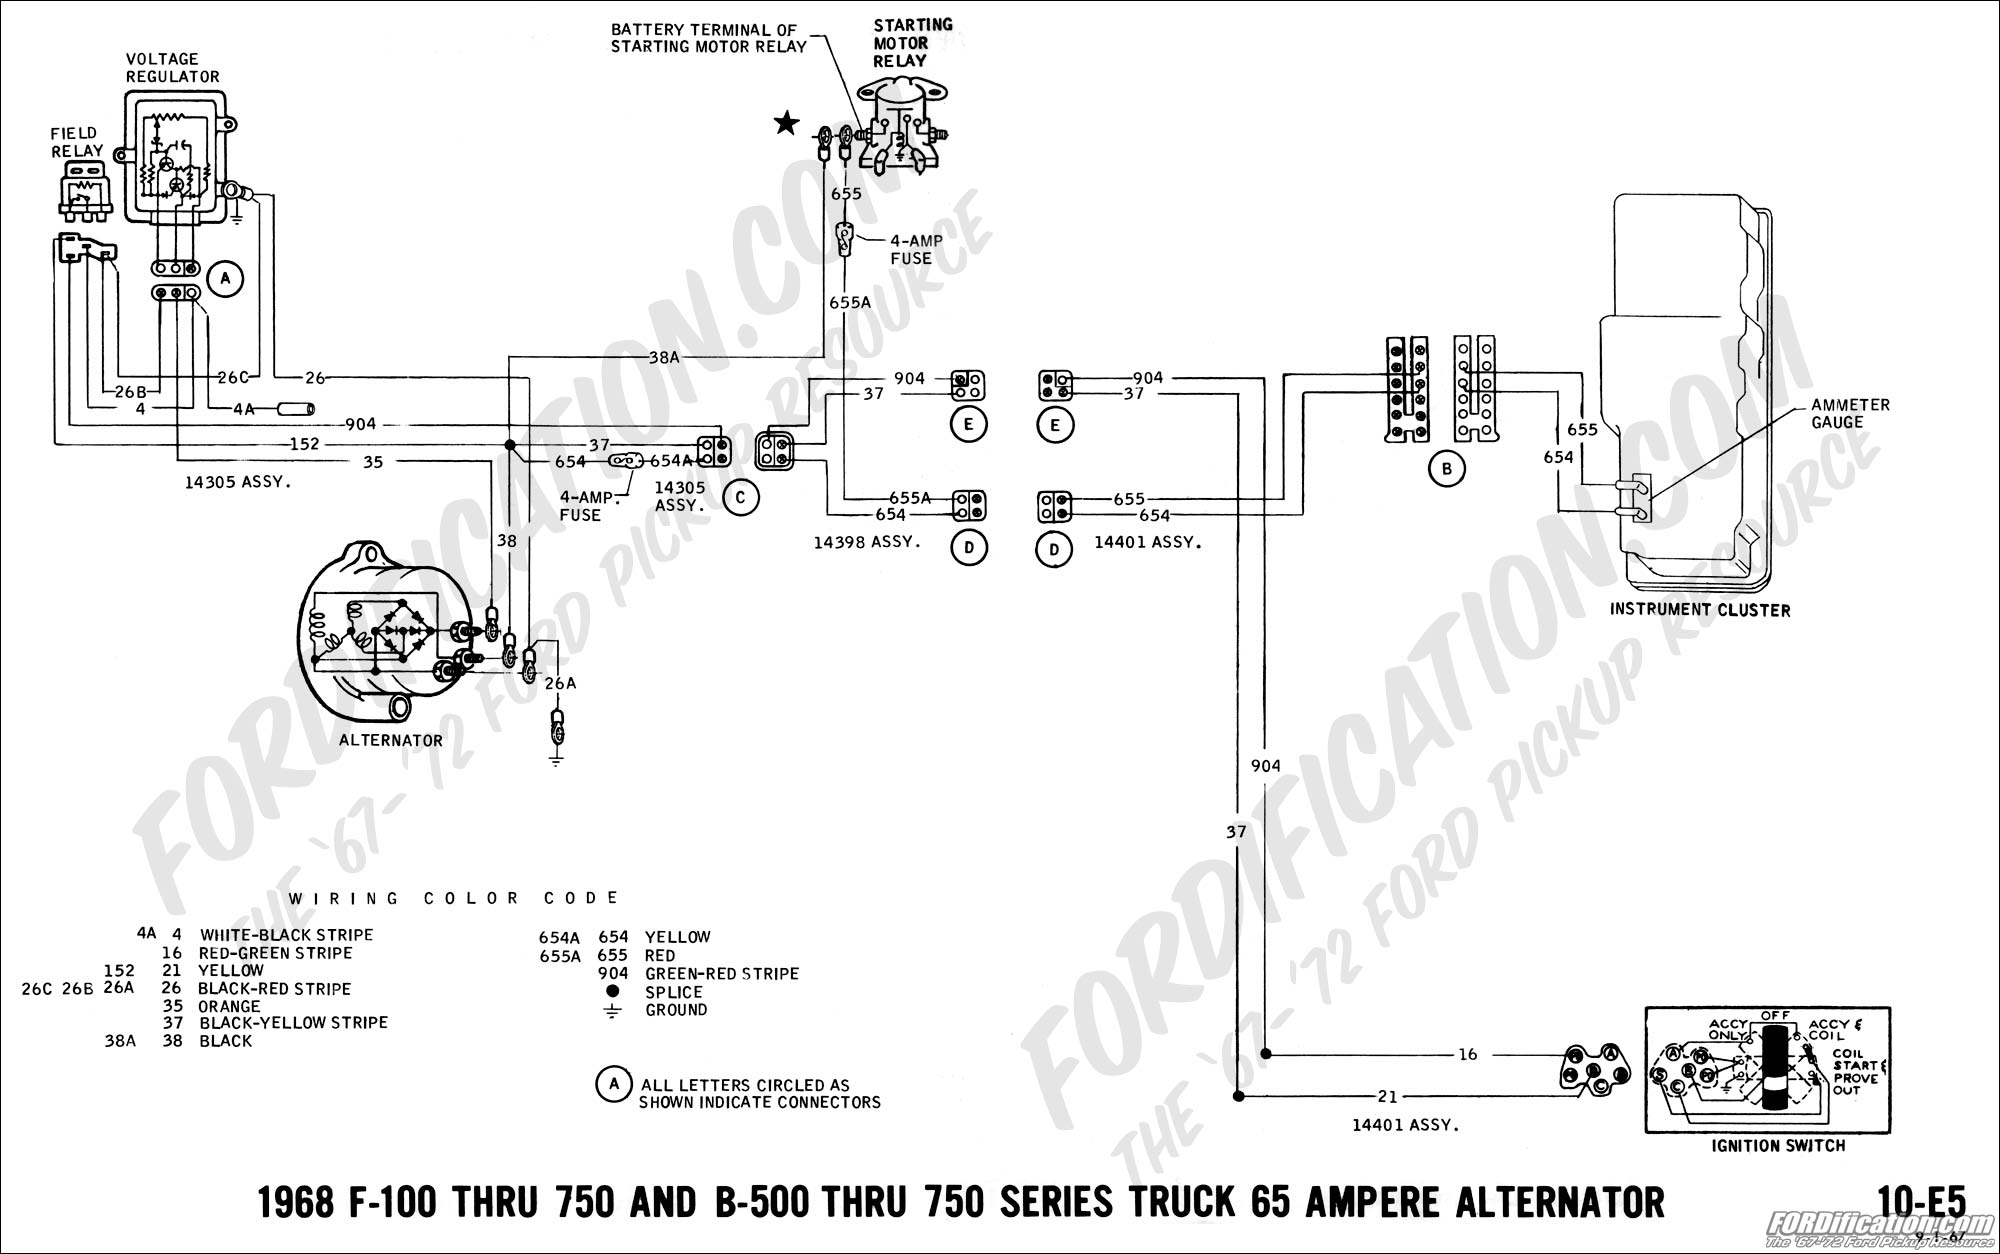 Ford F Turn Signal Wiring Diagram on ford electrical wiring diagrams, ford 7.3 diesel engine diagram, turn signal switch diagram, ford truck wiring harness, ford ranger turn signal wirning, ford wiring schematic, ford light switch diagram, ford e350 trailer wiring harness, ford turn signal relay, ford turn signal lights, ford truck relay diagram, ford truck ignition switch wiring, ford turn signal connector, ford 7.3 fuel line diagram, ford f100 wiring, turn signal circuit diagram, 2001 ford explorer fuse box diagram, 2000 ford f650 fuse panel diagram, ford truck engine diagram, 1968 mustang turn signal diagram,